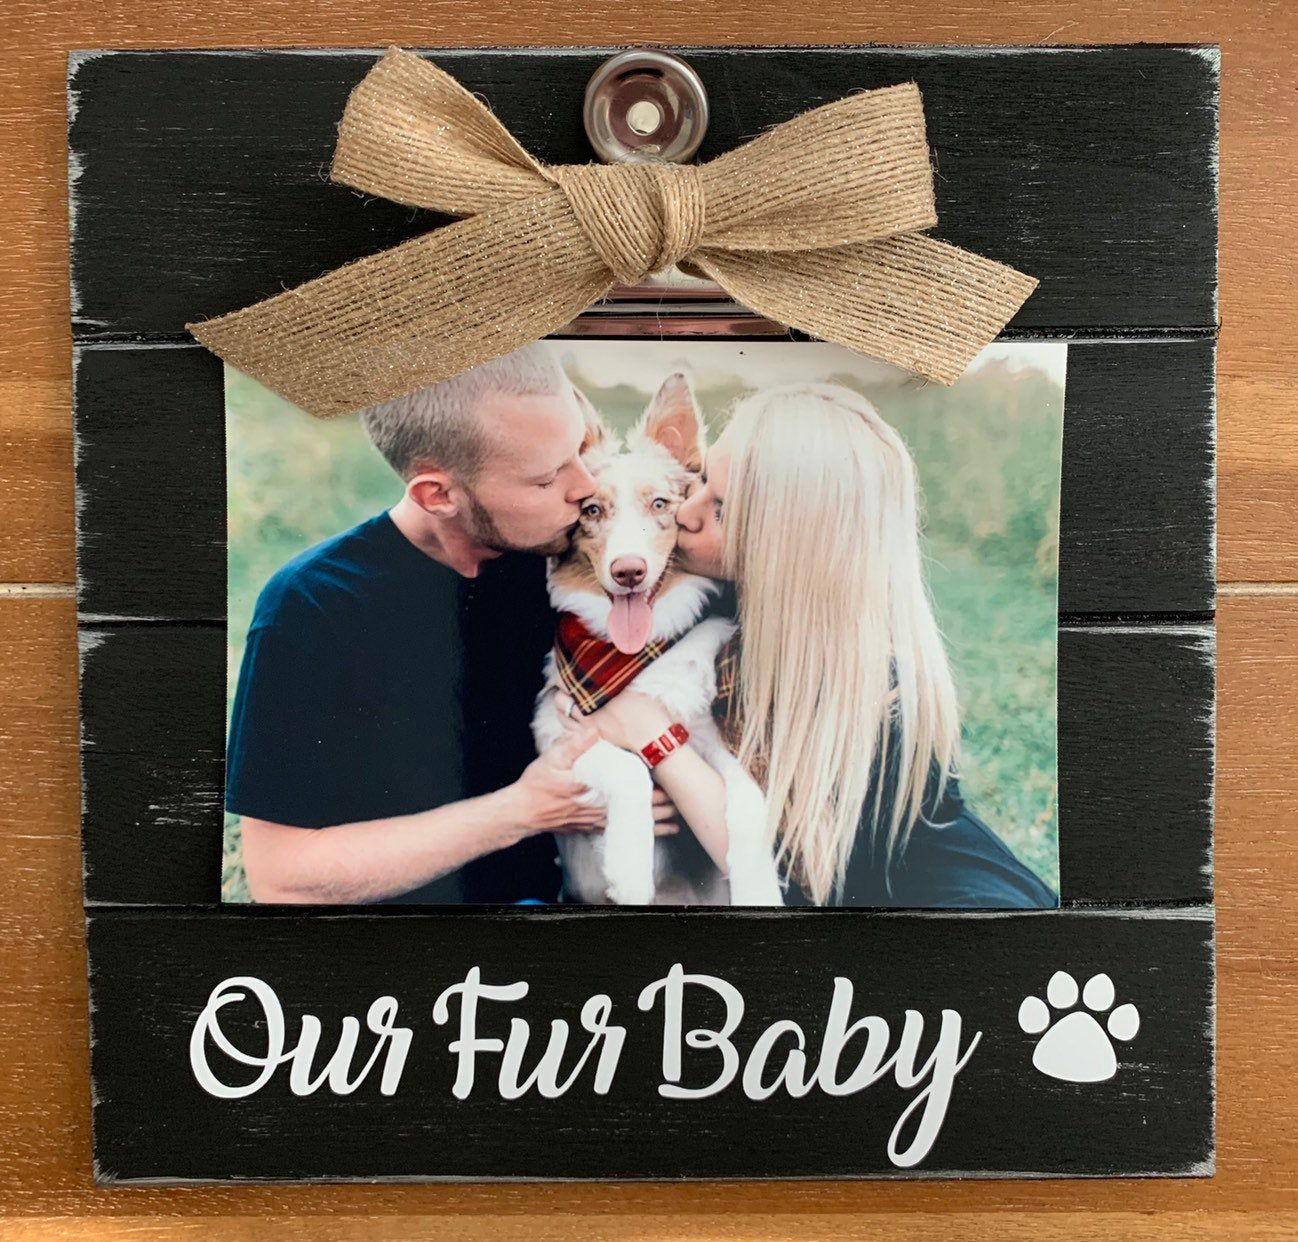 Excited to share this item from my #etsy shop: Pet Frame -Our / MyFur Baby or Our / My Fur Babies- Wood Picture Frame - Rustic Look #birthday #mothersday #doglover #catlover #catframe #furbaby #frame #rescuedog